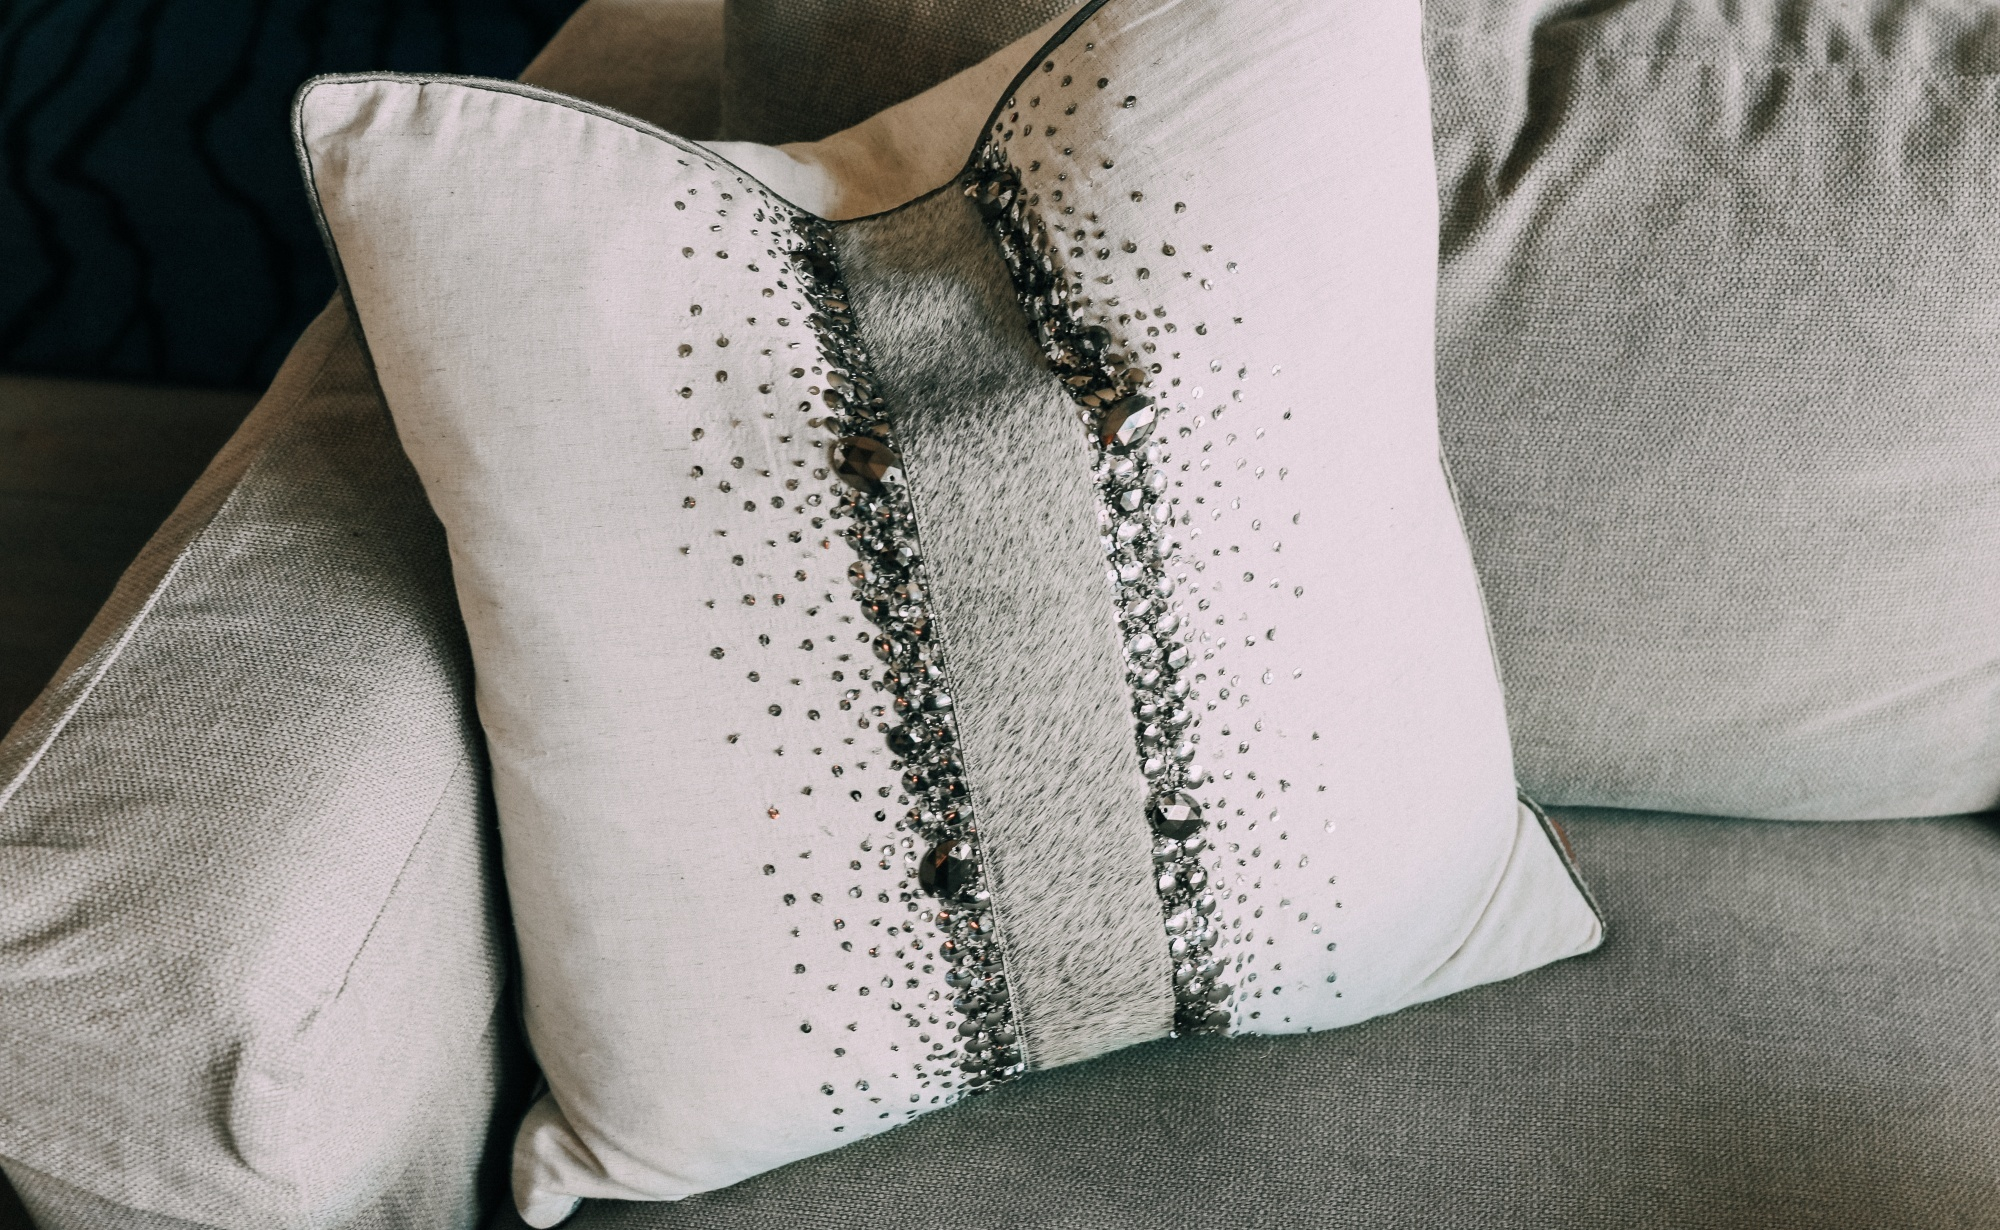 sequin throw pillow on couch House Tour modern mountain townhome Telluride Colorado